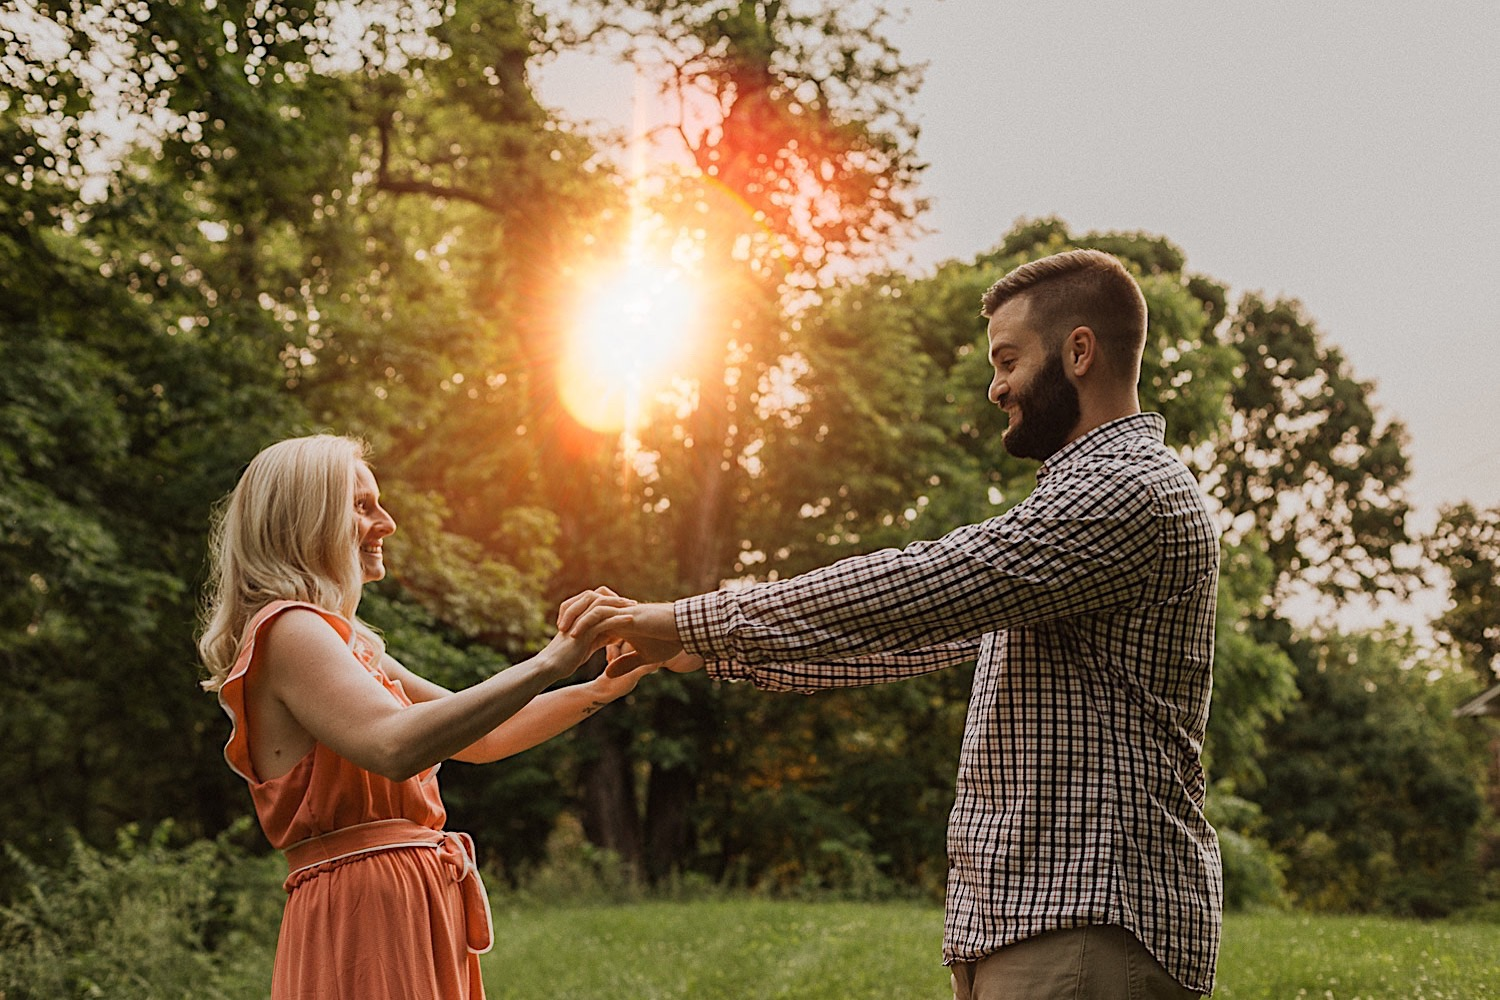 07_Engagement_Photographer_Indianapolis_Wedding.jpg